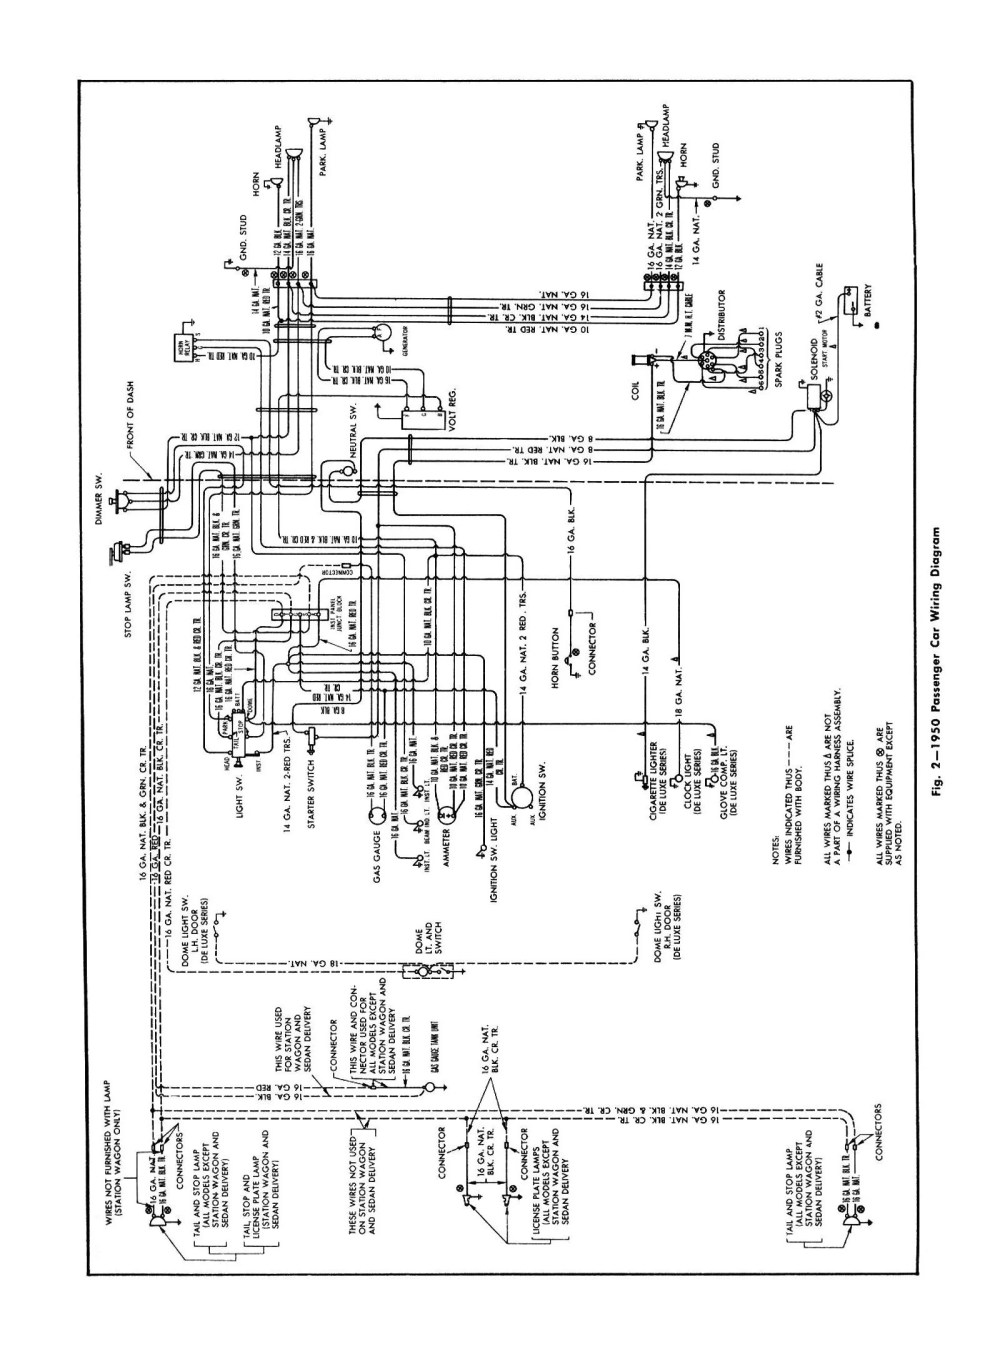 medium resolution of chevy wiring diagrams 50 chevy truck wiring diagram 1950 car general wiring